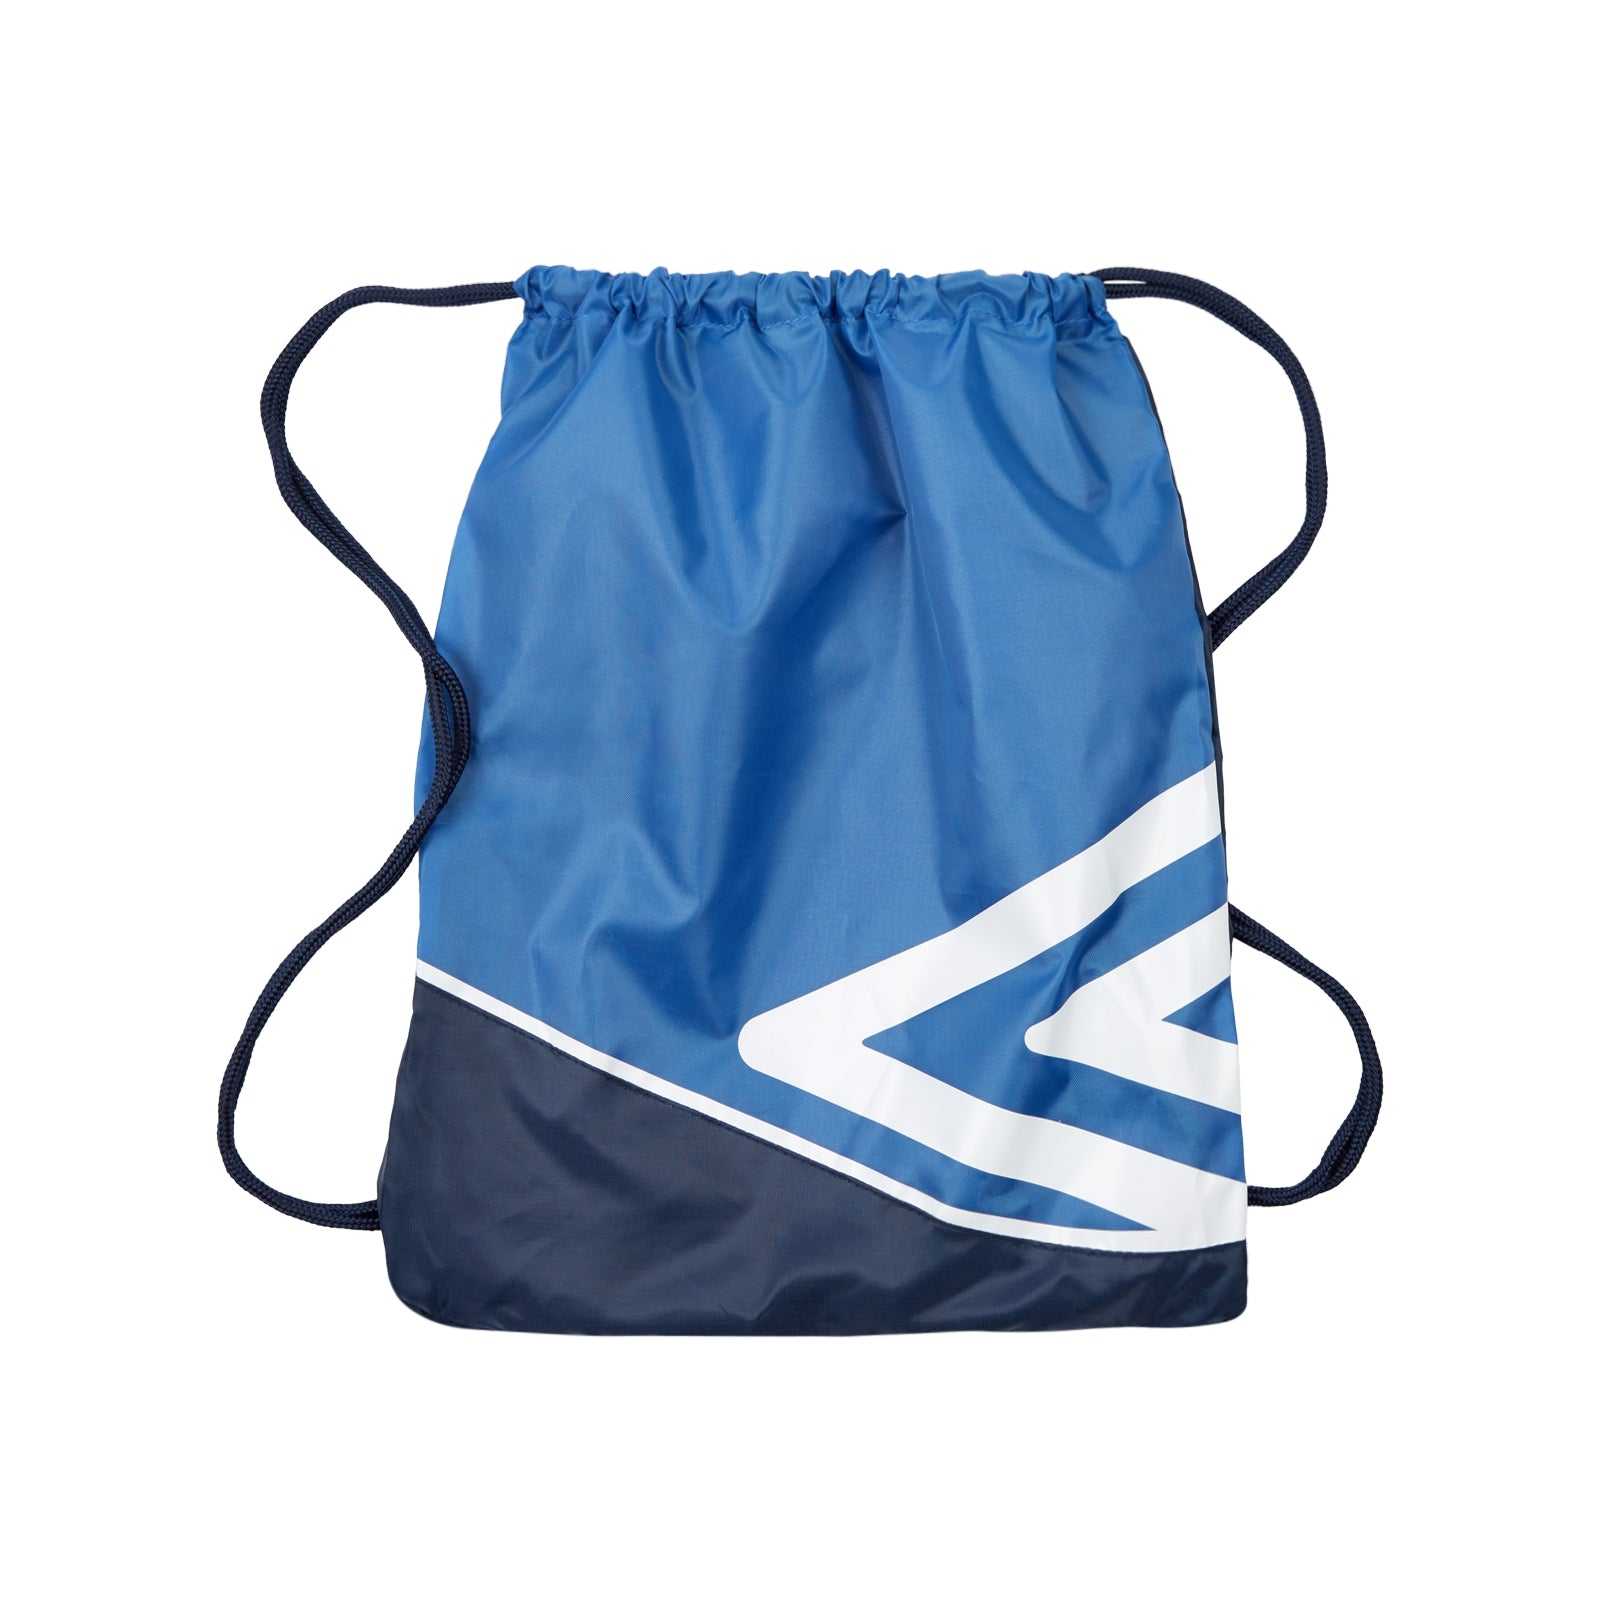 Umbro Pro Training Gymsack in royal, dark navy with large double diamond logo in white